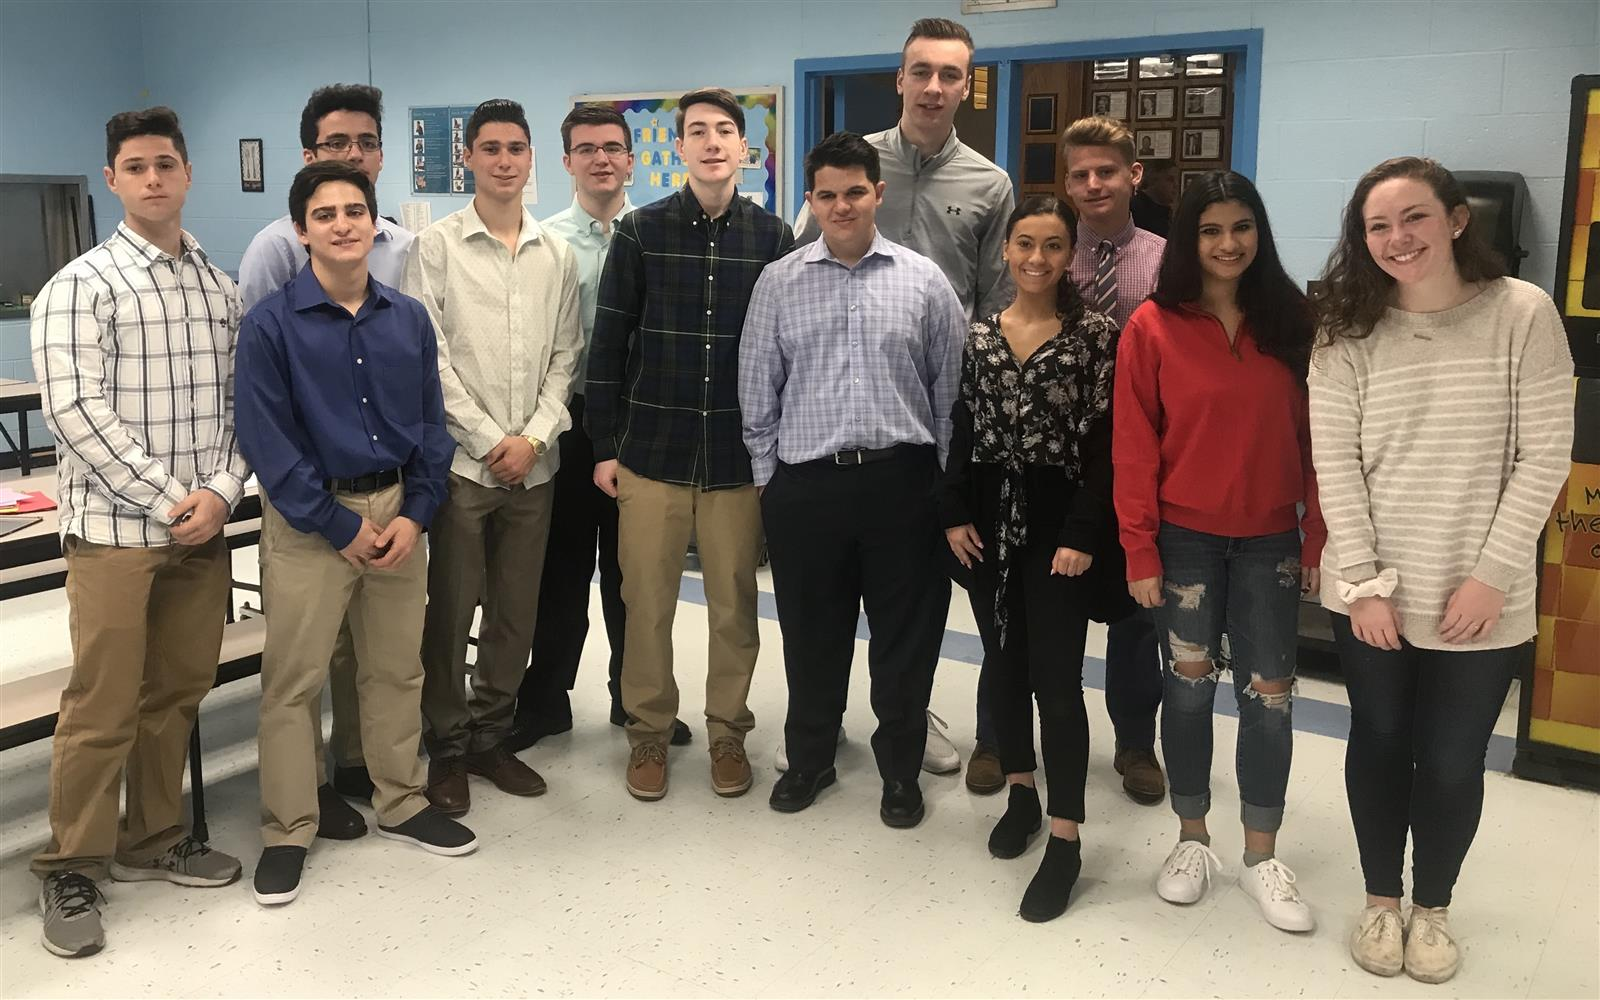 Talented Young West Islip Entrepreneurs Shine in Lion's Den